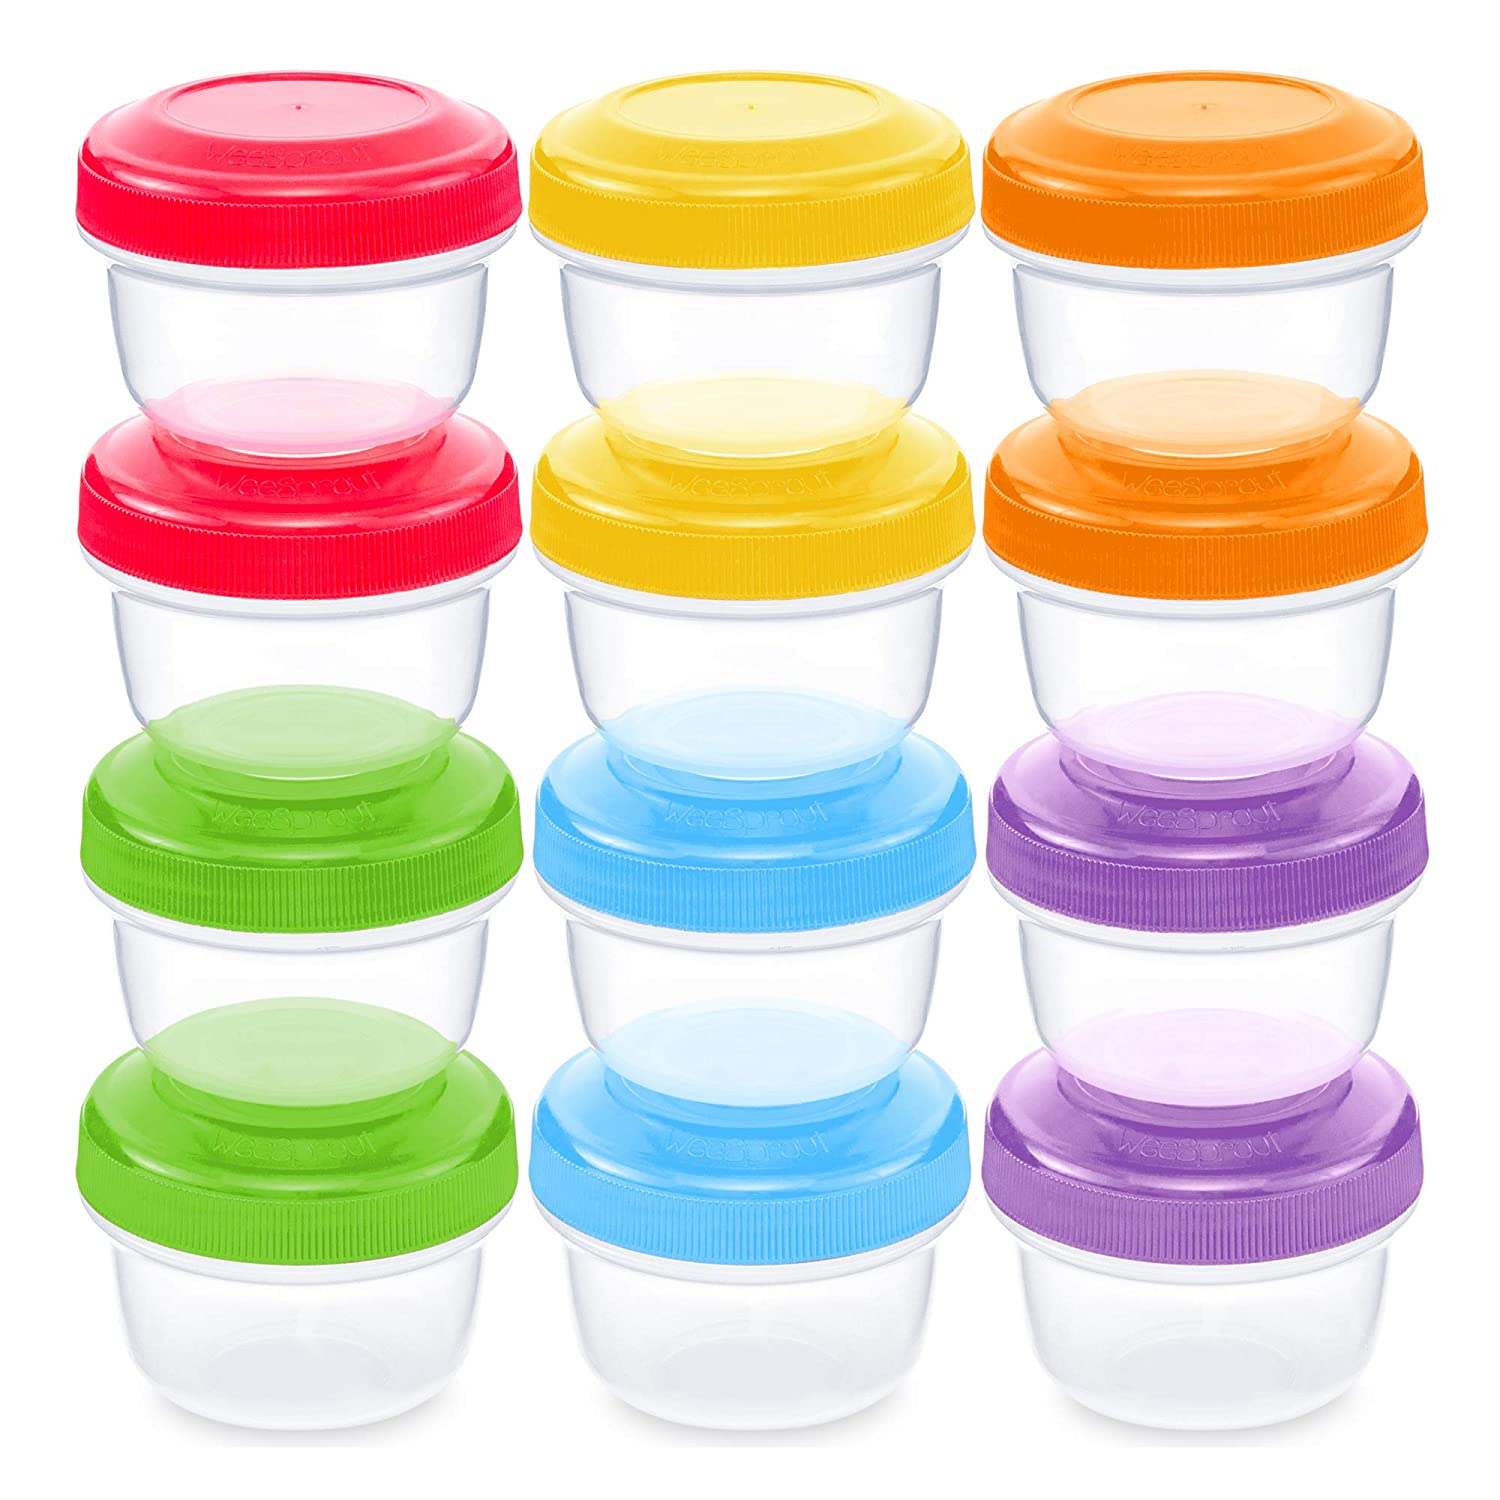 Leakproof Baby Food Storage | 12 Container Set | Premium BPA Free Small Plastic Containers with Lids Lock in Freshness, Nutrients & Flavor